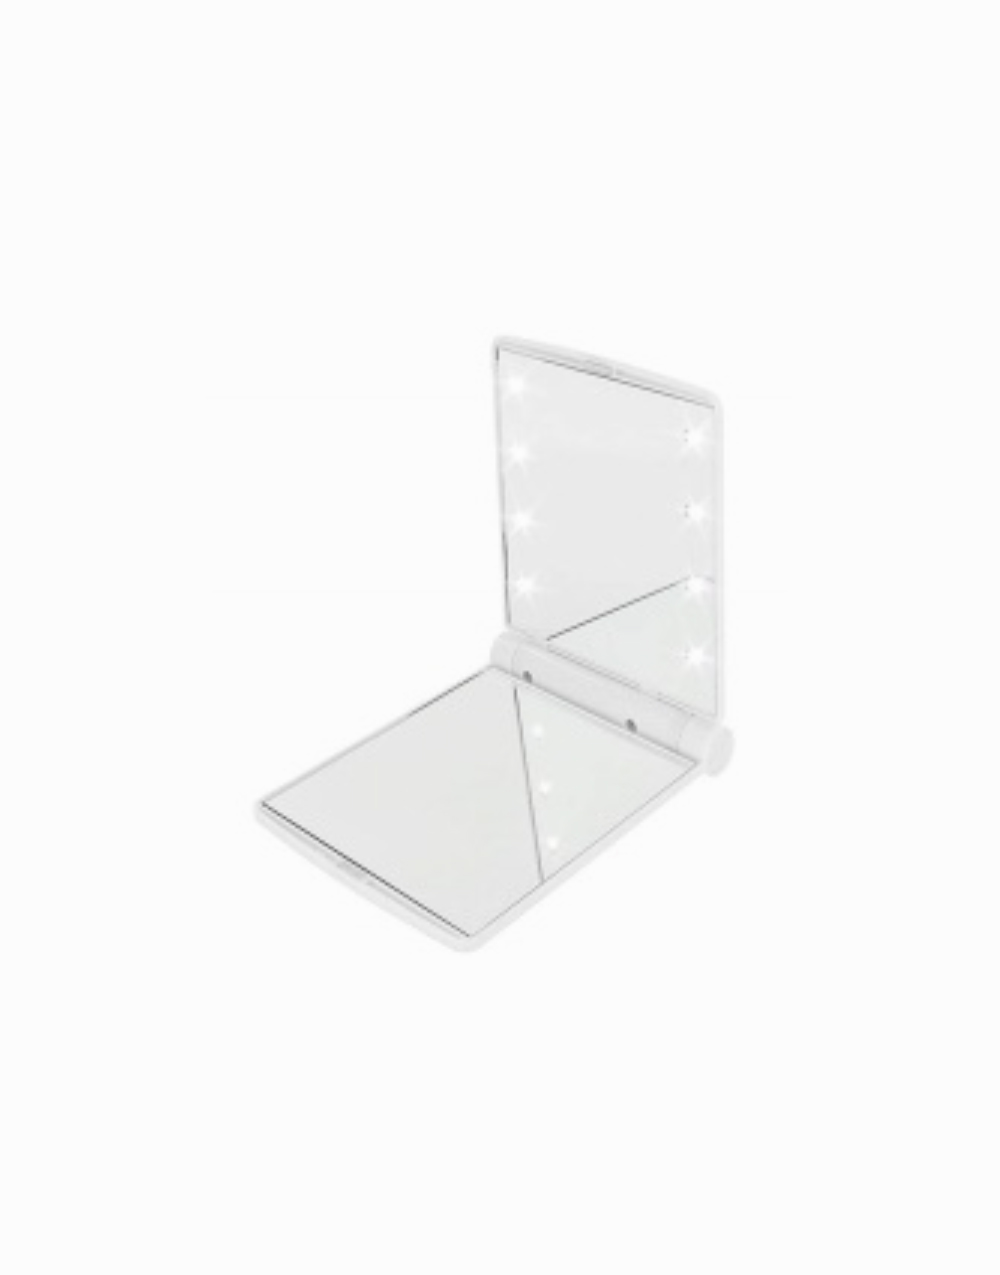 Pocket Makeup LED Light Mirror by Honest Tools